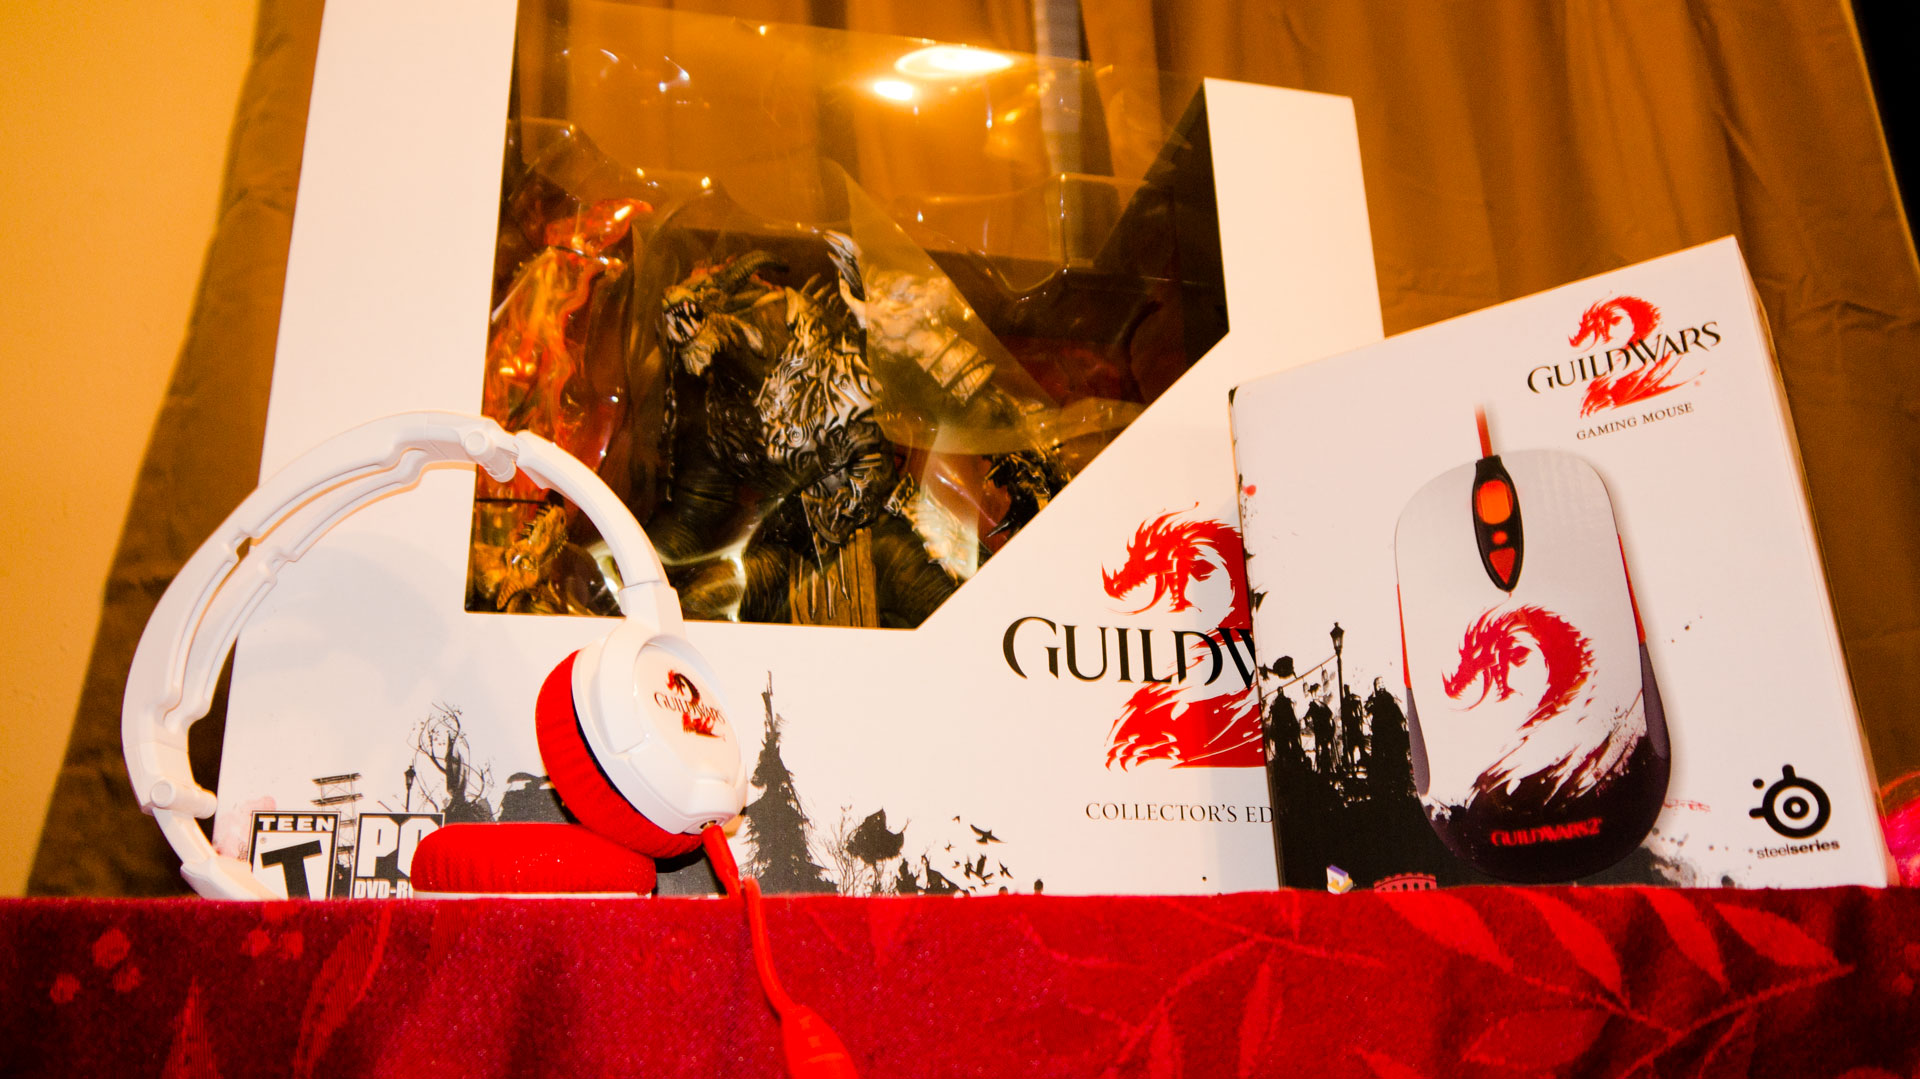 Click here to read The Official &lt;em&gt;Guild Wars 2&lt;/em&gt; Mouse and Headset are Freaking Adorable